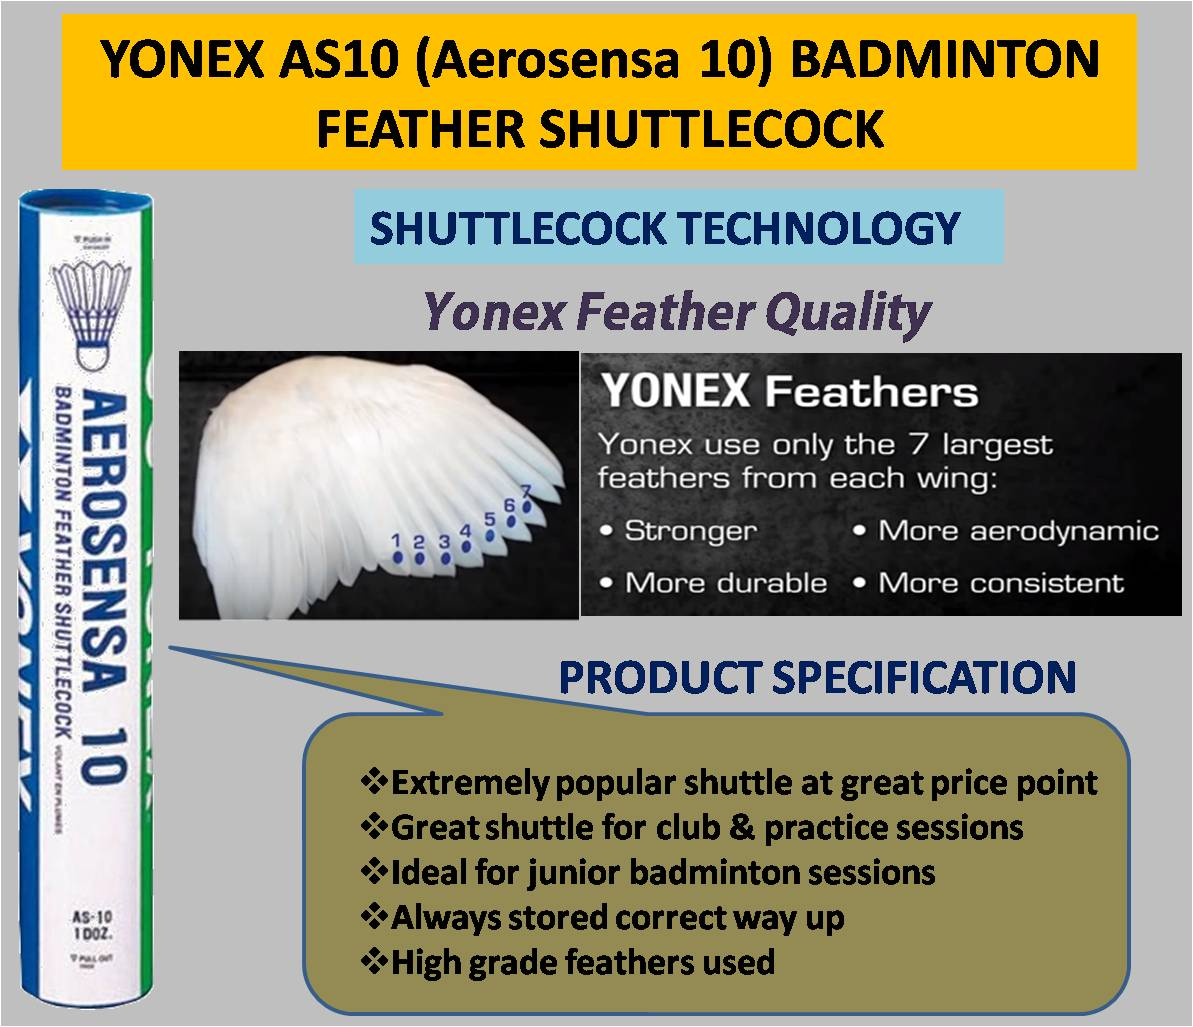 YONEX AS10 BADMINTON FEATHER SHUTTLECOCK